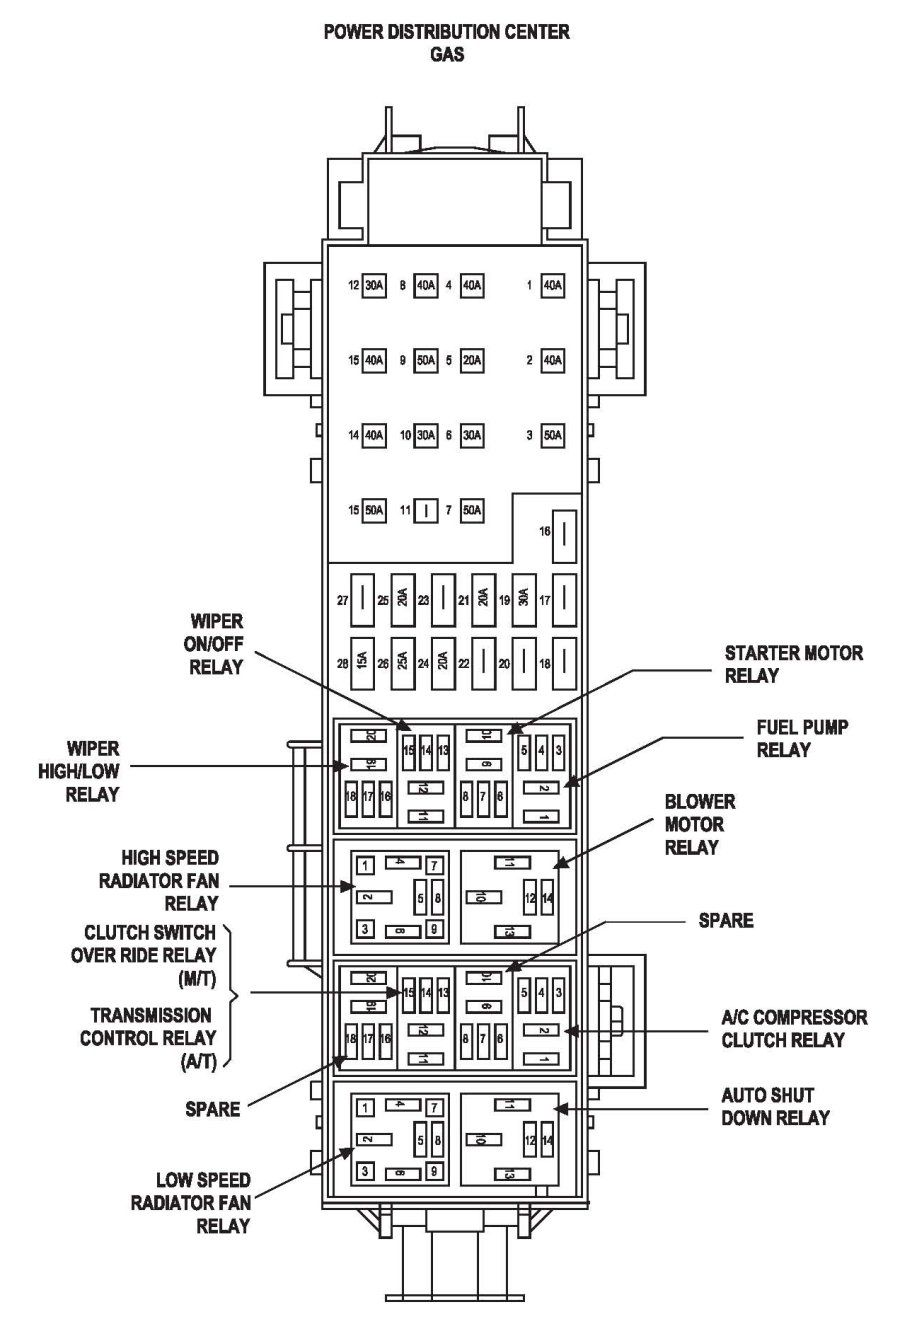 b3536c3739783eb19f827744cc42c3c4 jeep liberty fuse box diagram image details jeep liberty 2012 jeep wrangler unlimited fuse box at fashall.co